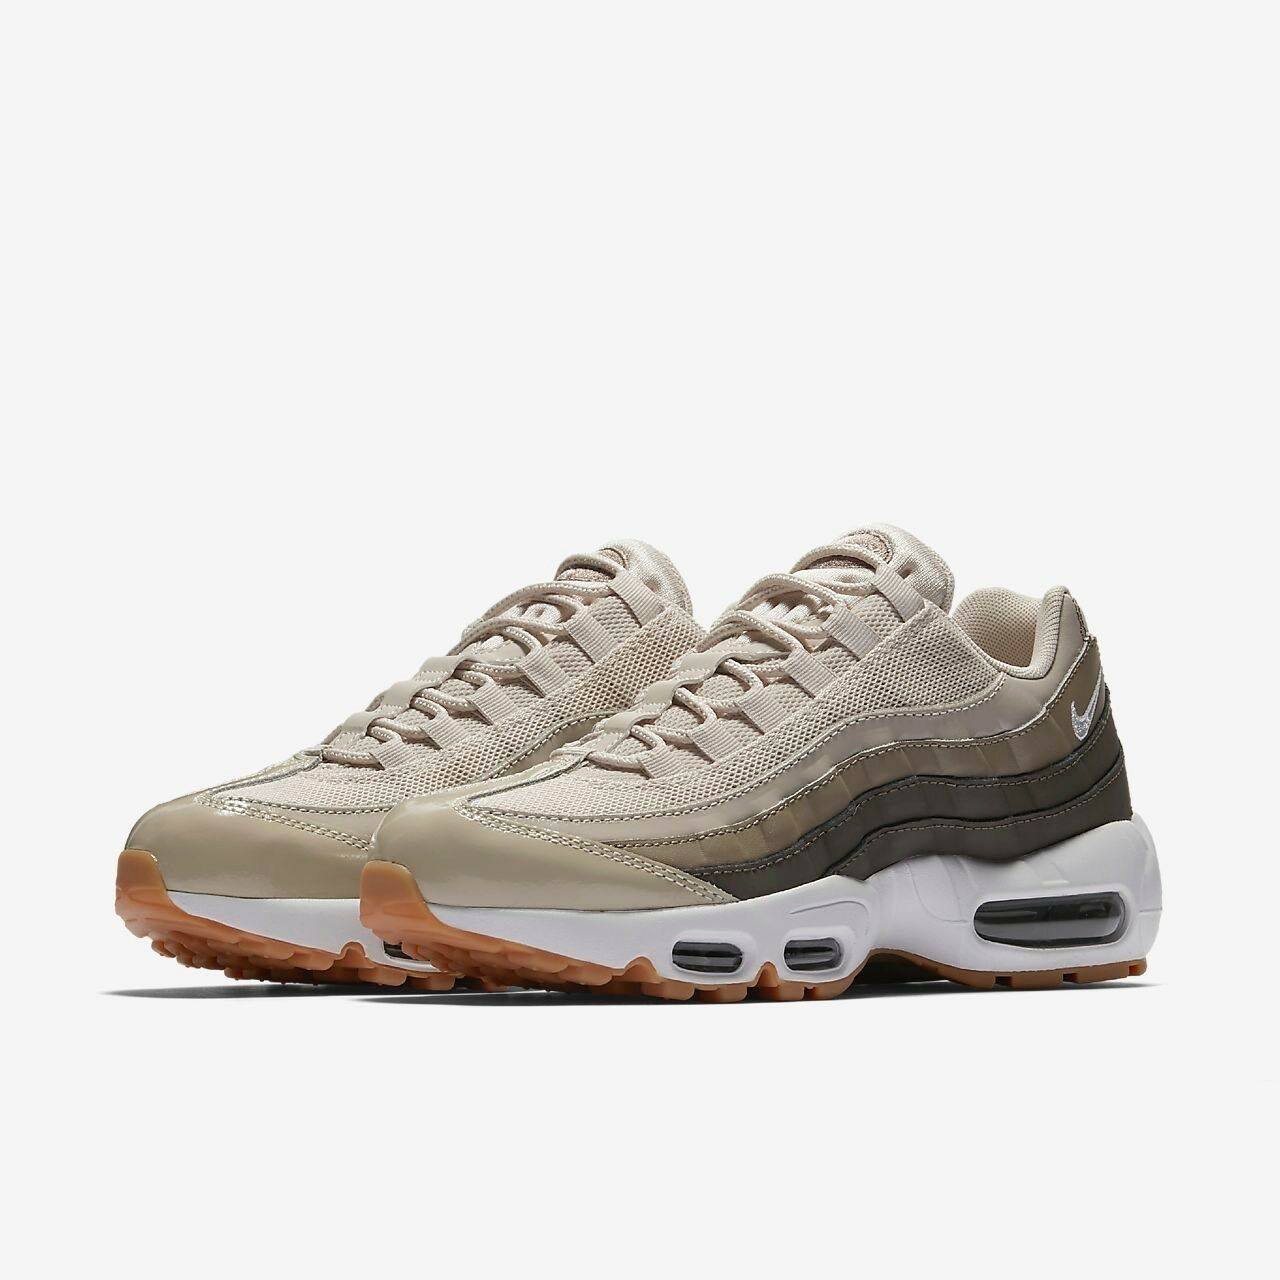 NIKE AIR MAX 95 OG 307960011 KHAKI GREY  WOMEN'S RUNNING SHOES 100% AUTHENTIC